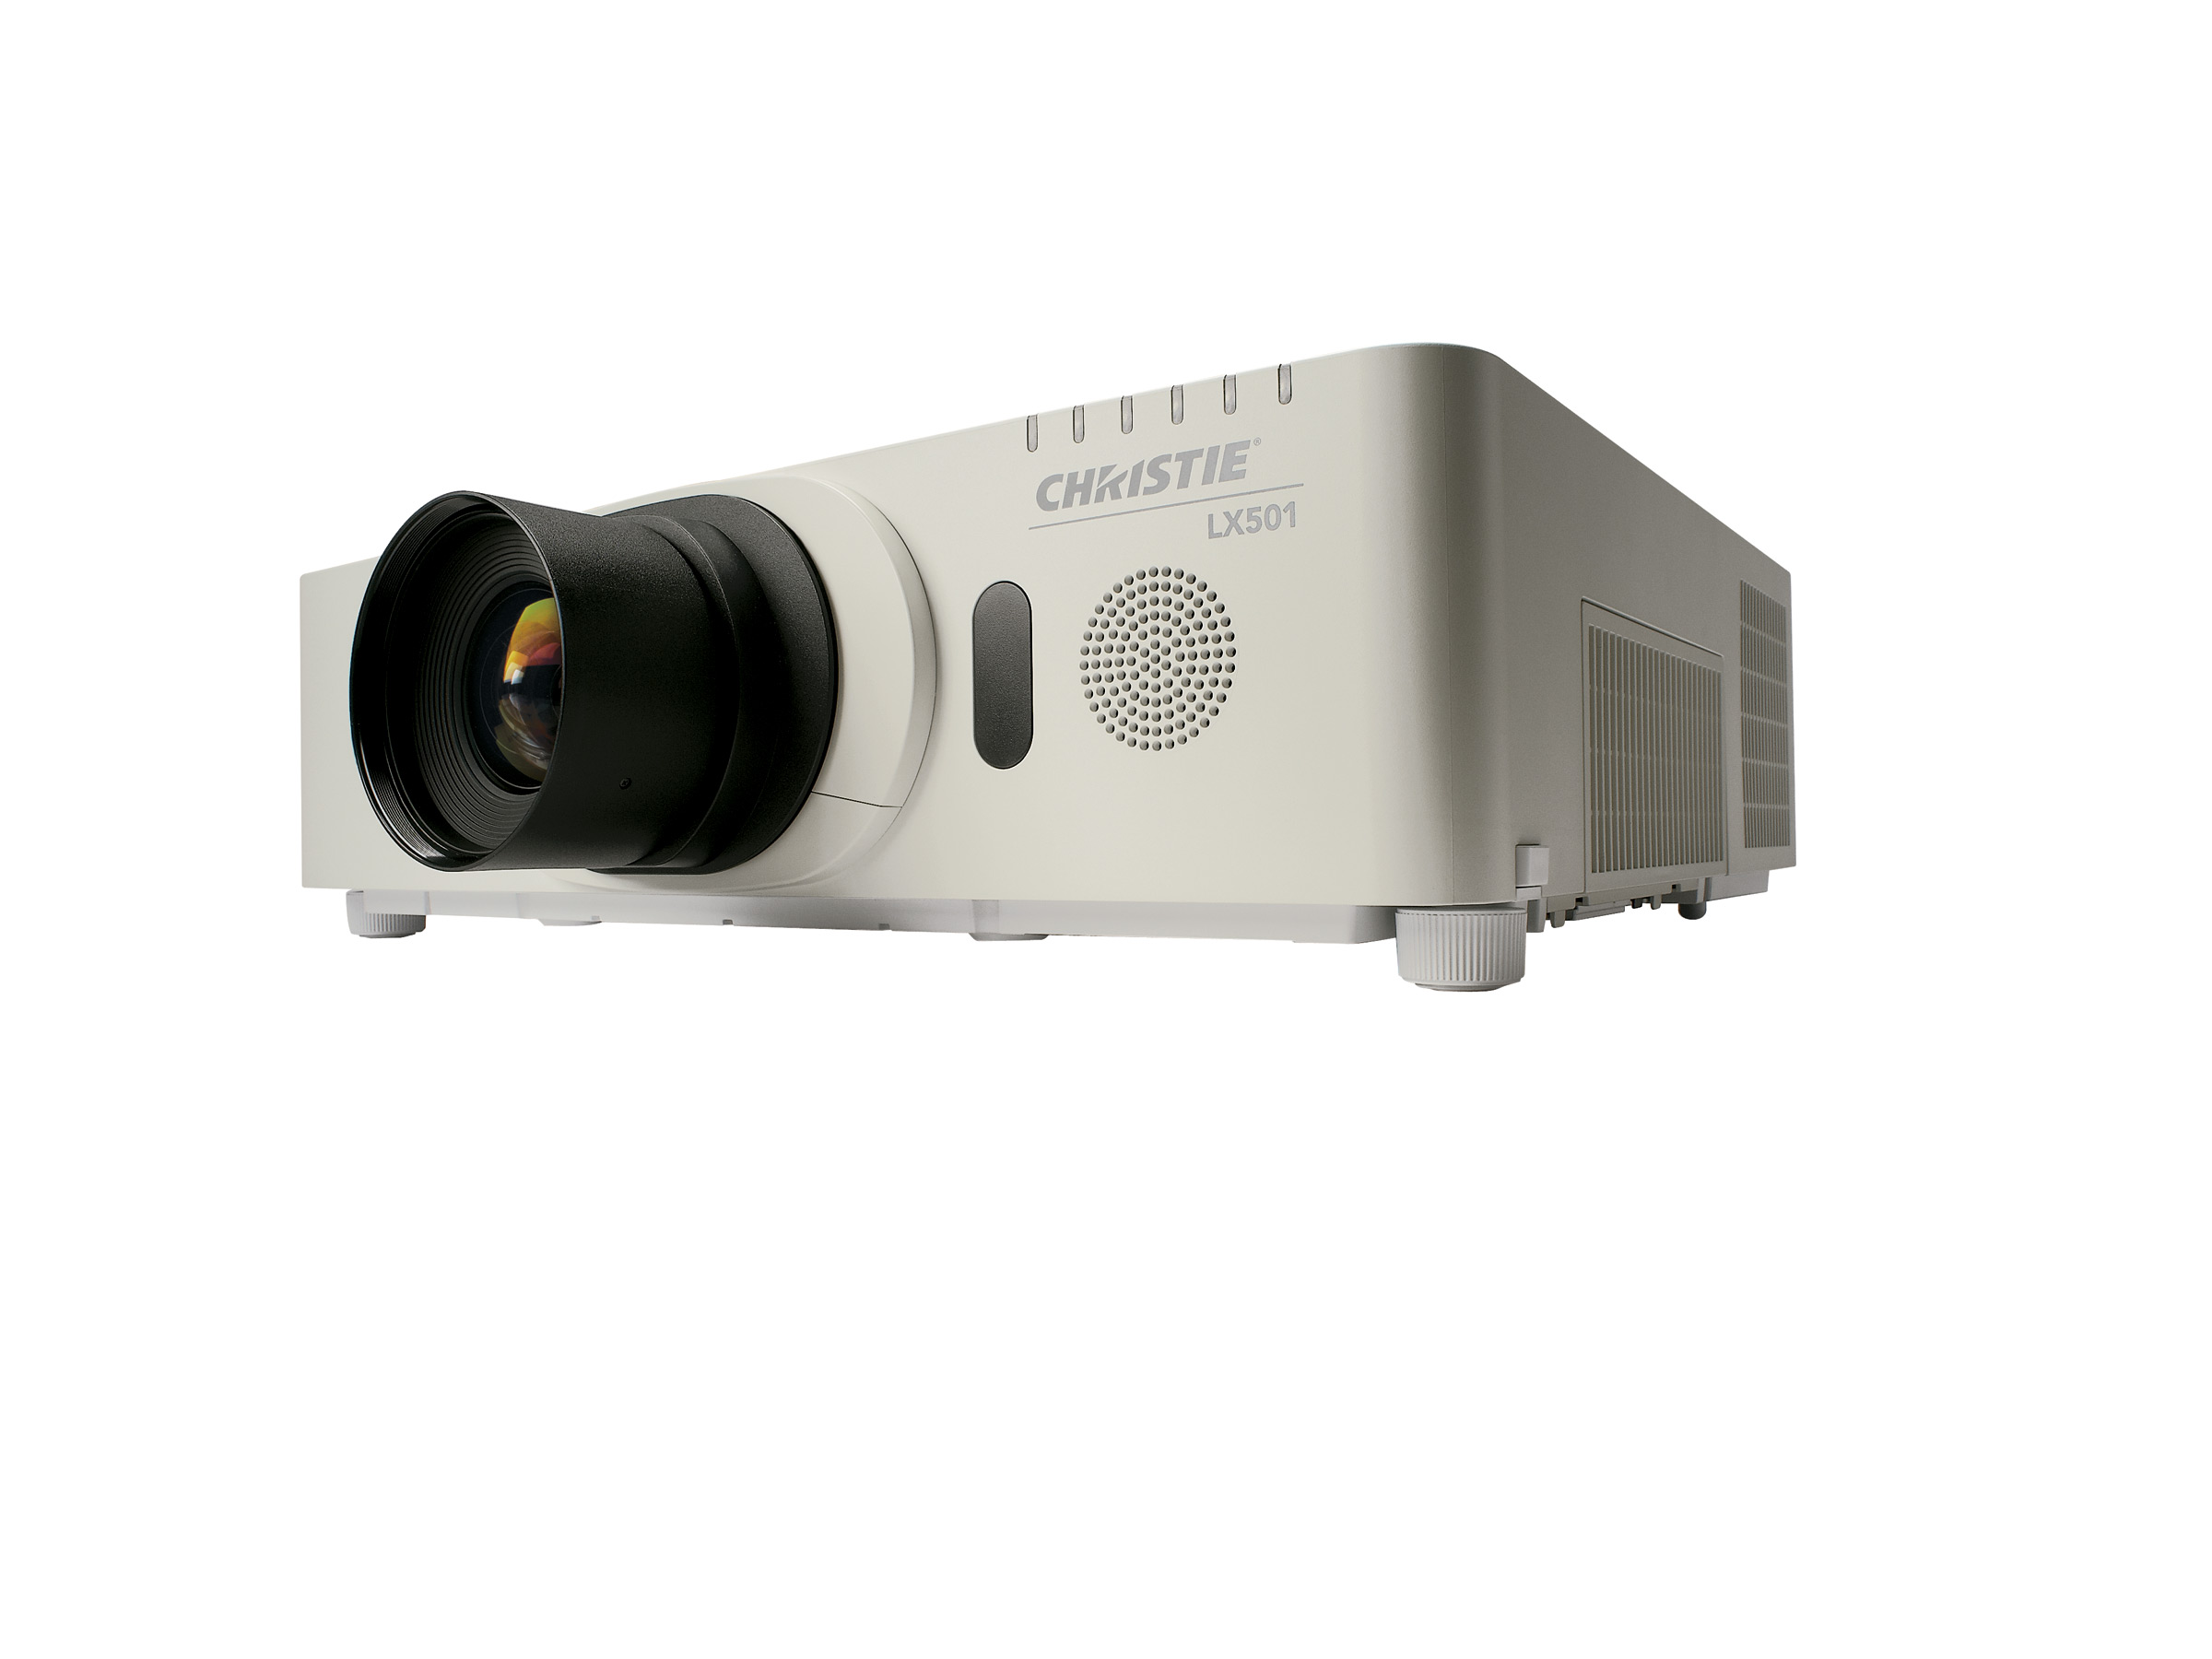 /globalassets/.catalog/products/images/christie-lx501/gallery/christie-lx501-3lcd-digital-projector-image-6.jpg